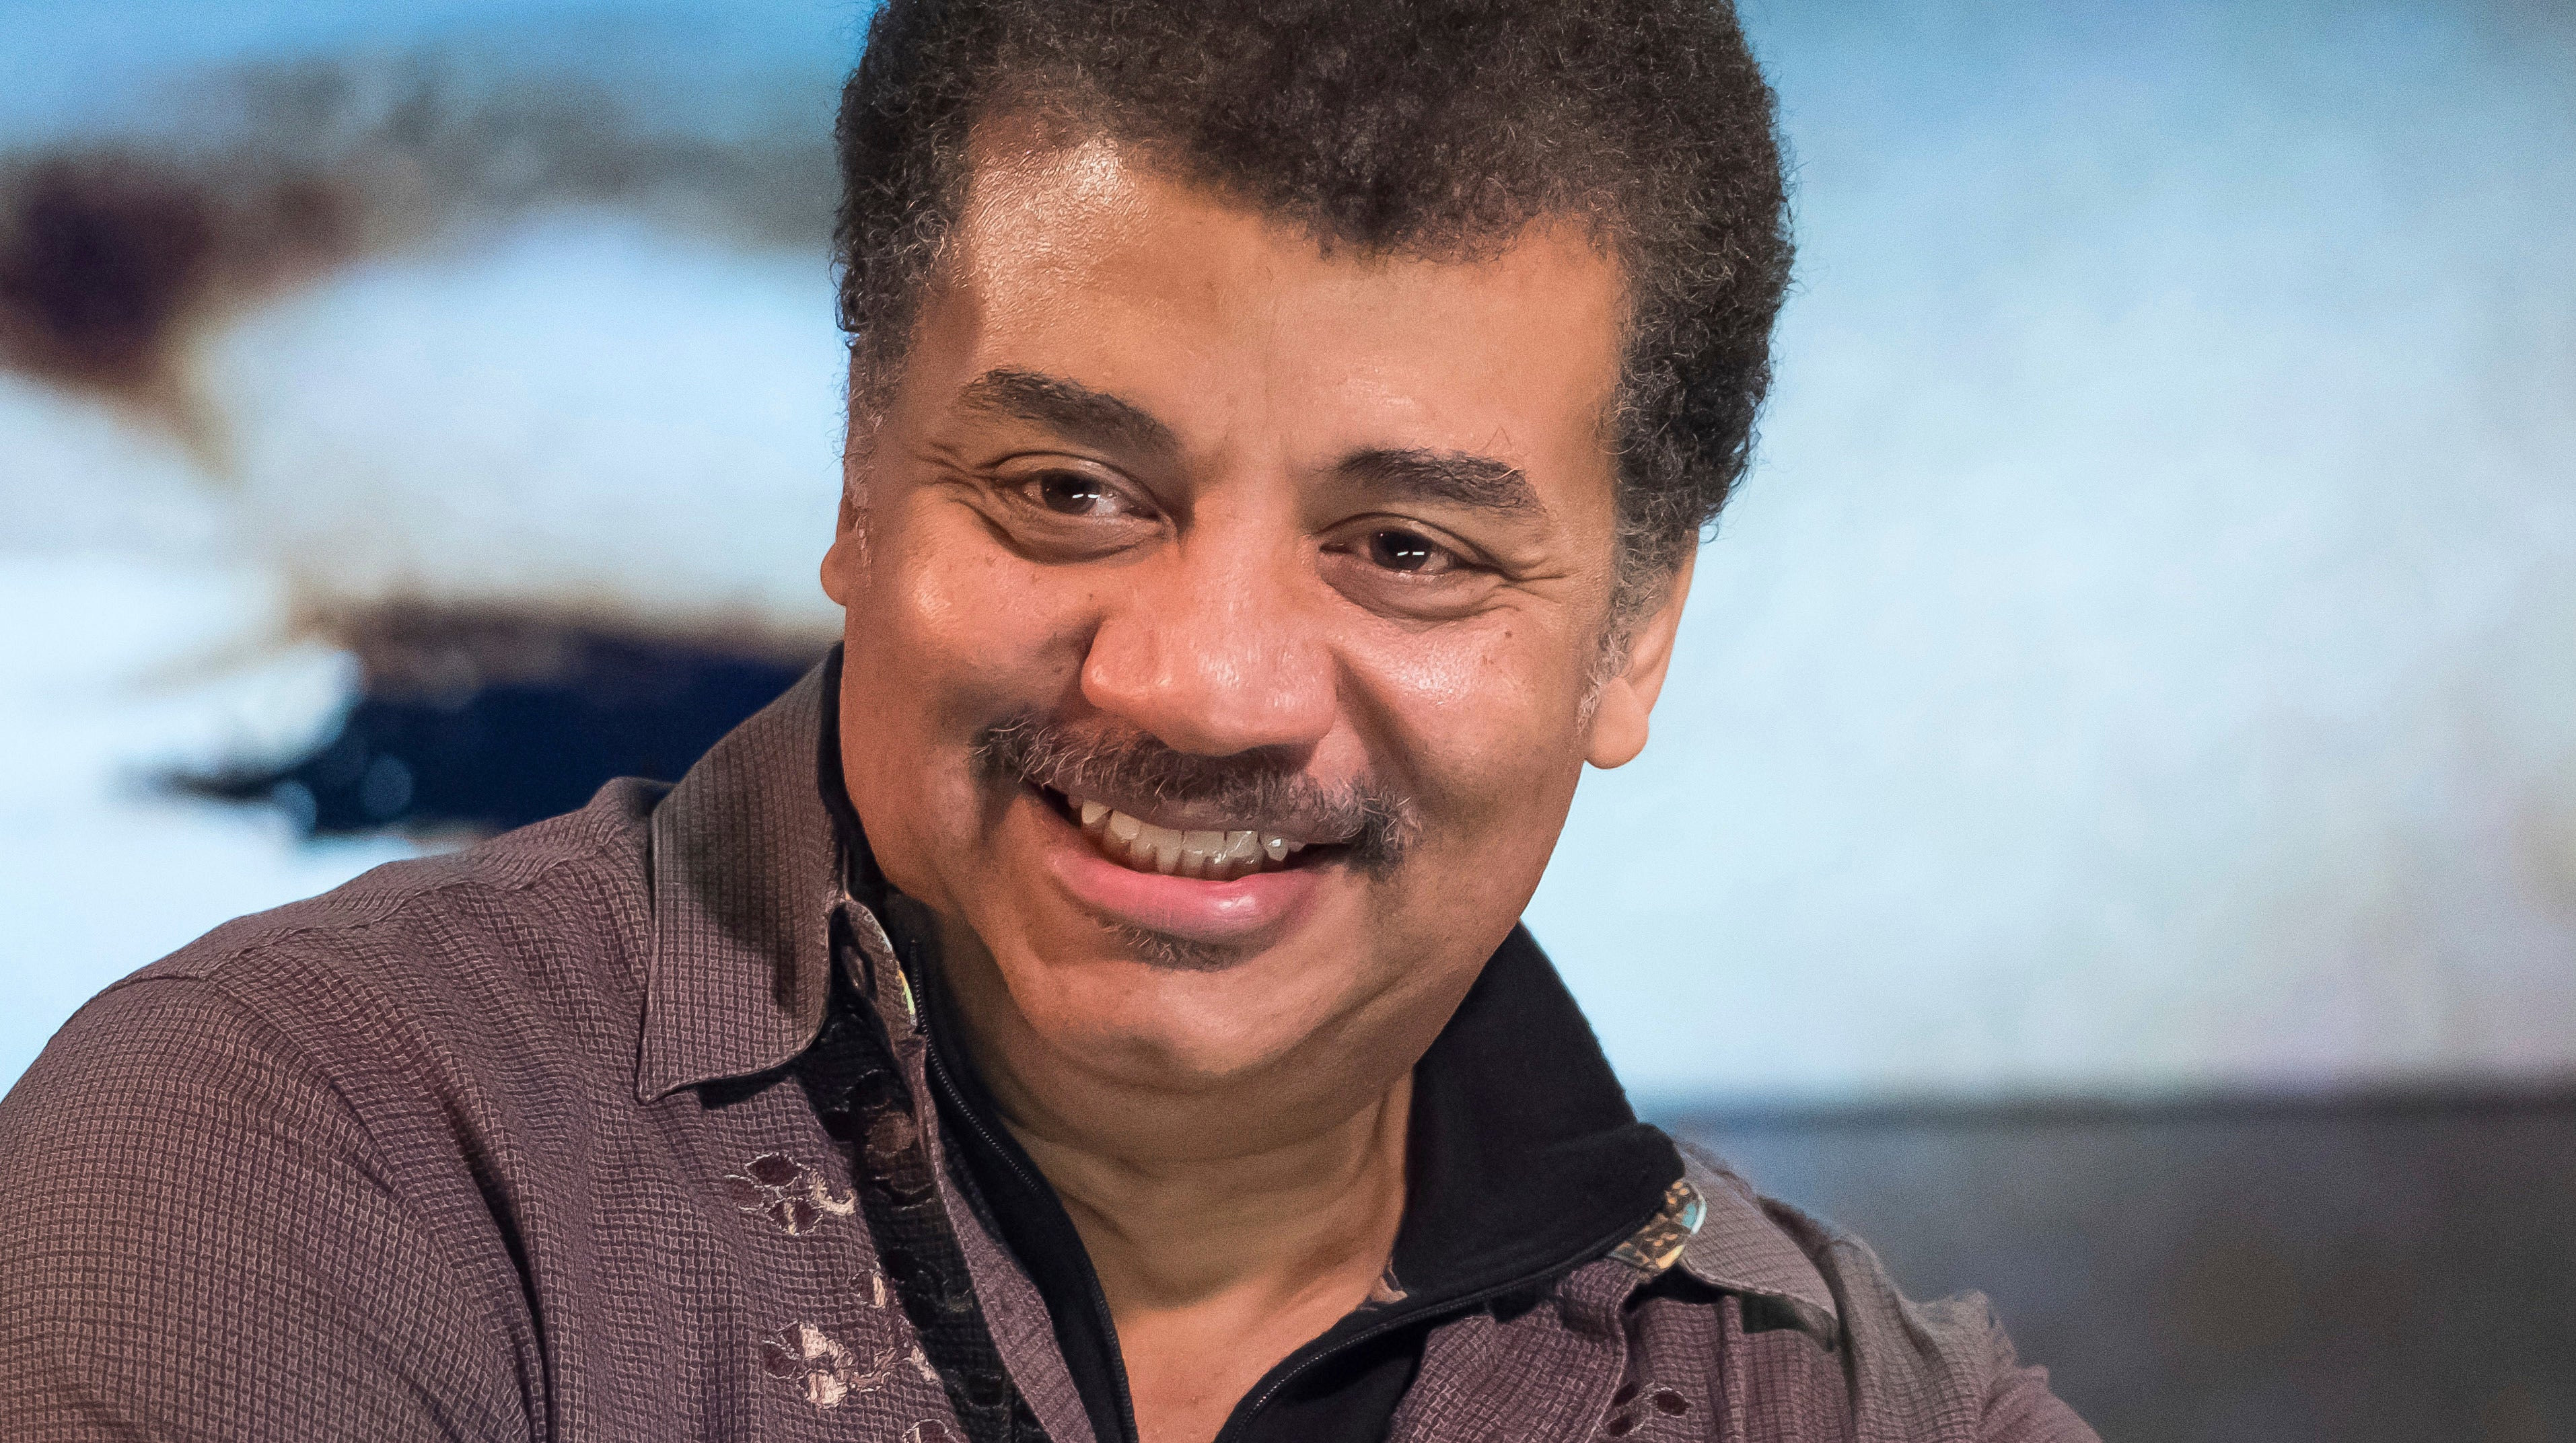 Neil DeGrasse Tyson Responds To Allegations Of Sexual Misconduct Amid Investigation